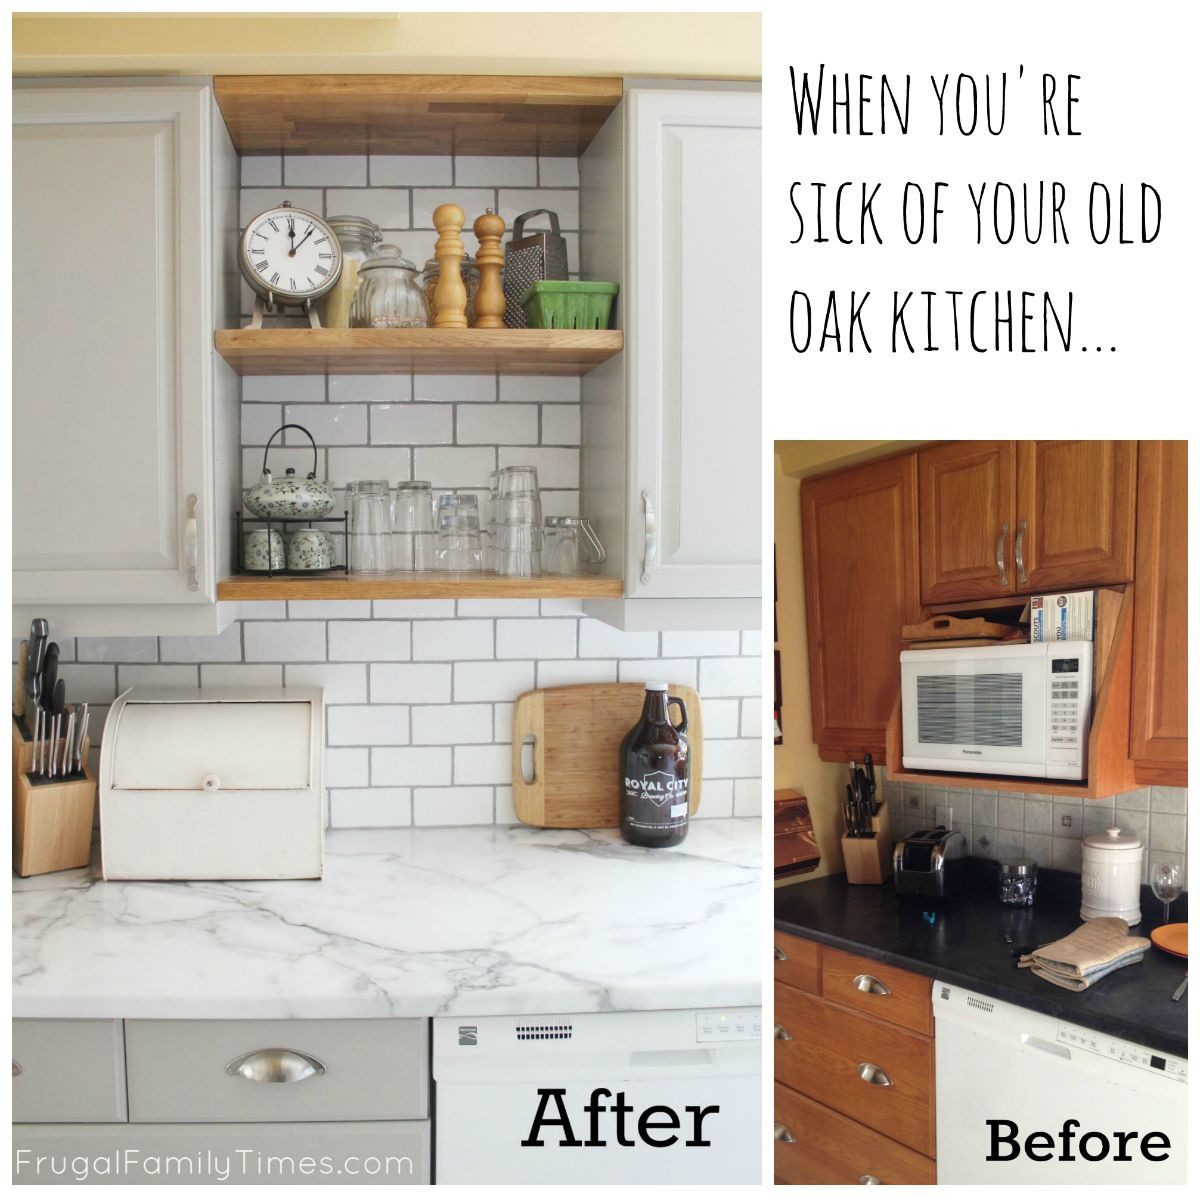 Best Kitchen Gallery: When You're Sick Of Your Old Oak Kitchen Kitchen Update For Way of How To Update Oak Kitchen Cabinets on cal-ite.com